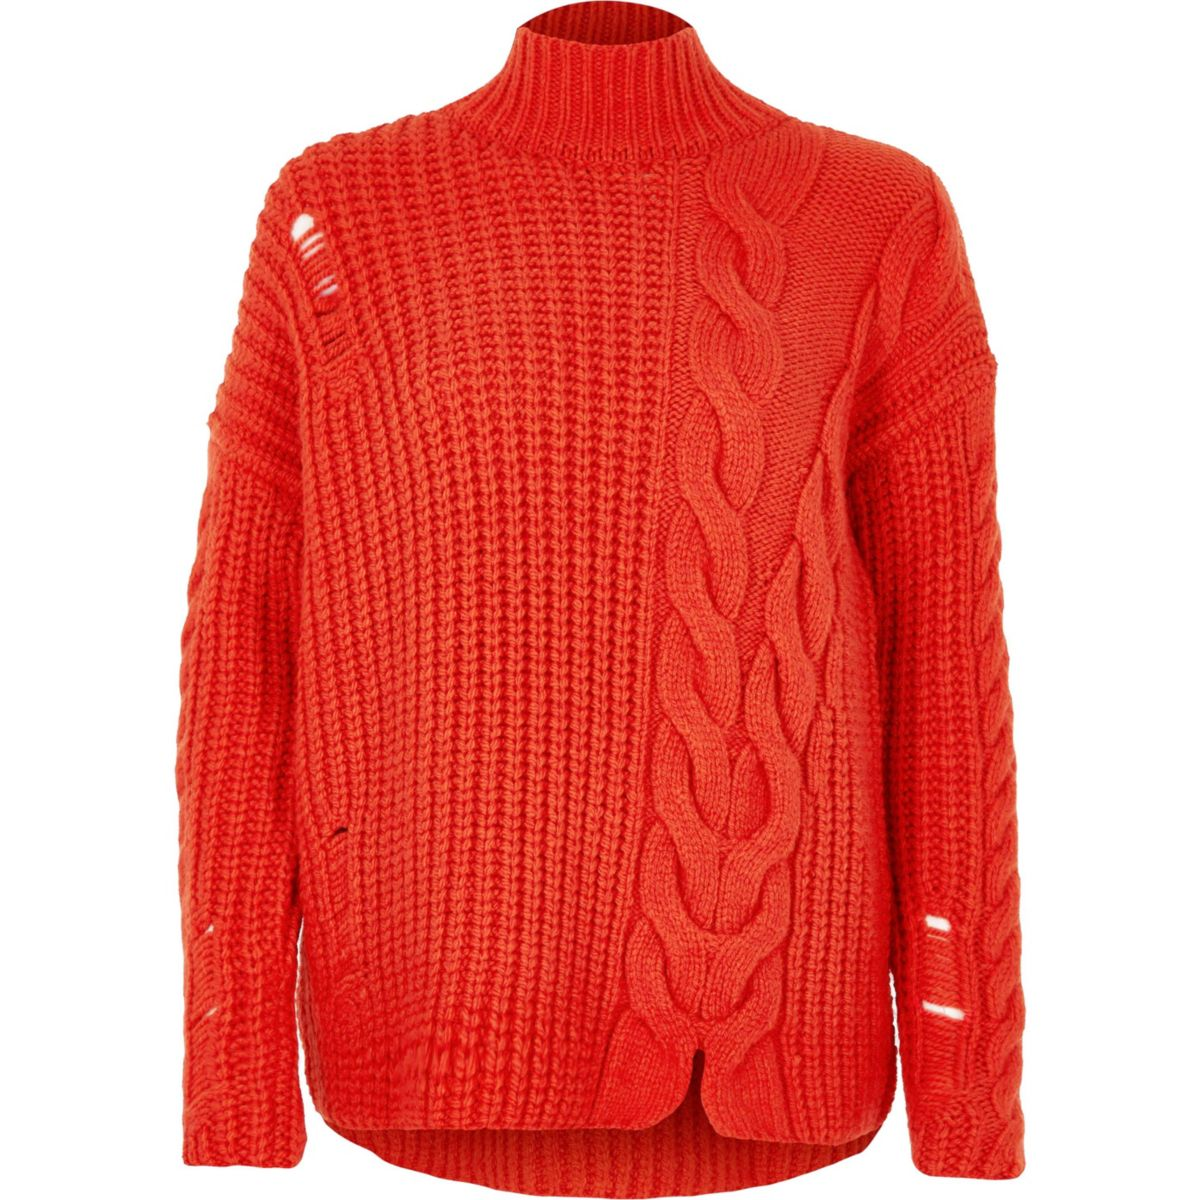 Women's Red Cable Knit Baloon Sleeve Jumper £ 25 + £ shipping From Missguided Price last checked 1 day, 11 hours ago Product prices and availability are accurate as of the date/time indicated and are subject to change.